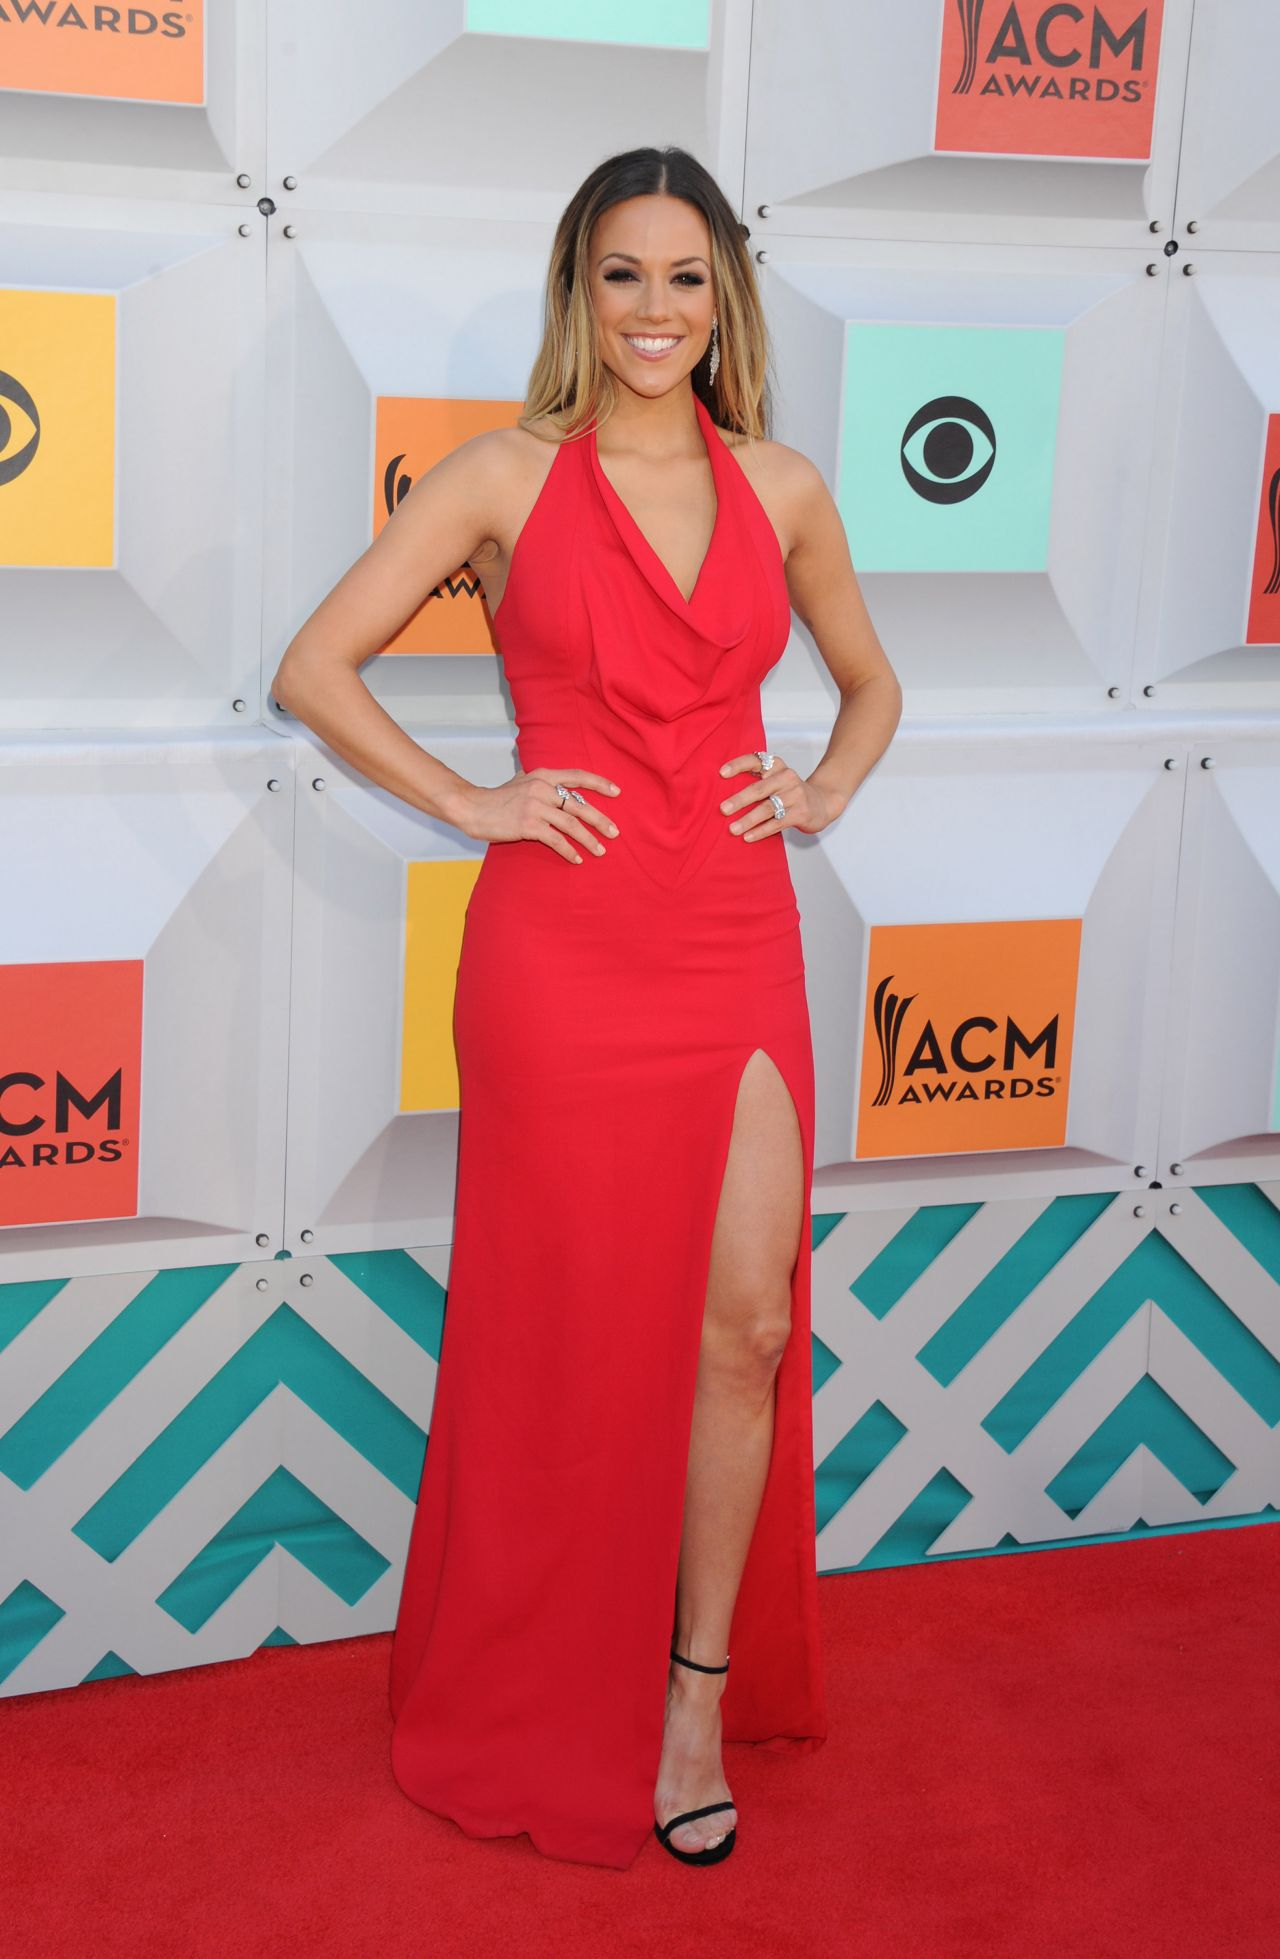 Jana Kramer Academy Of Country Music Awards 2016 In Las